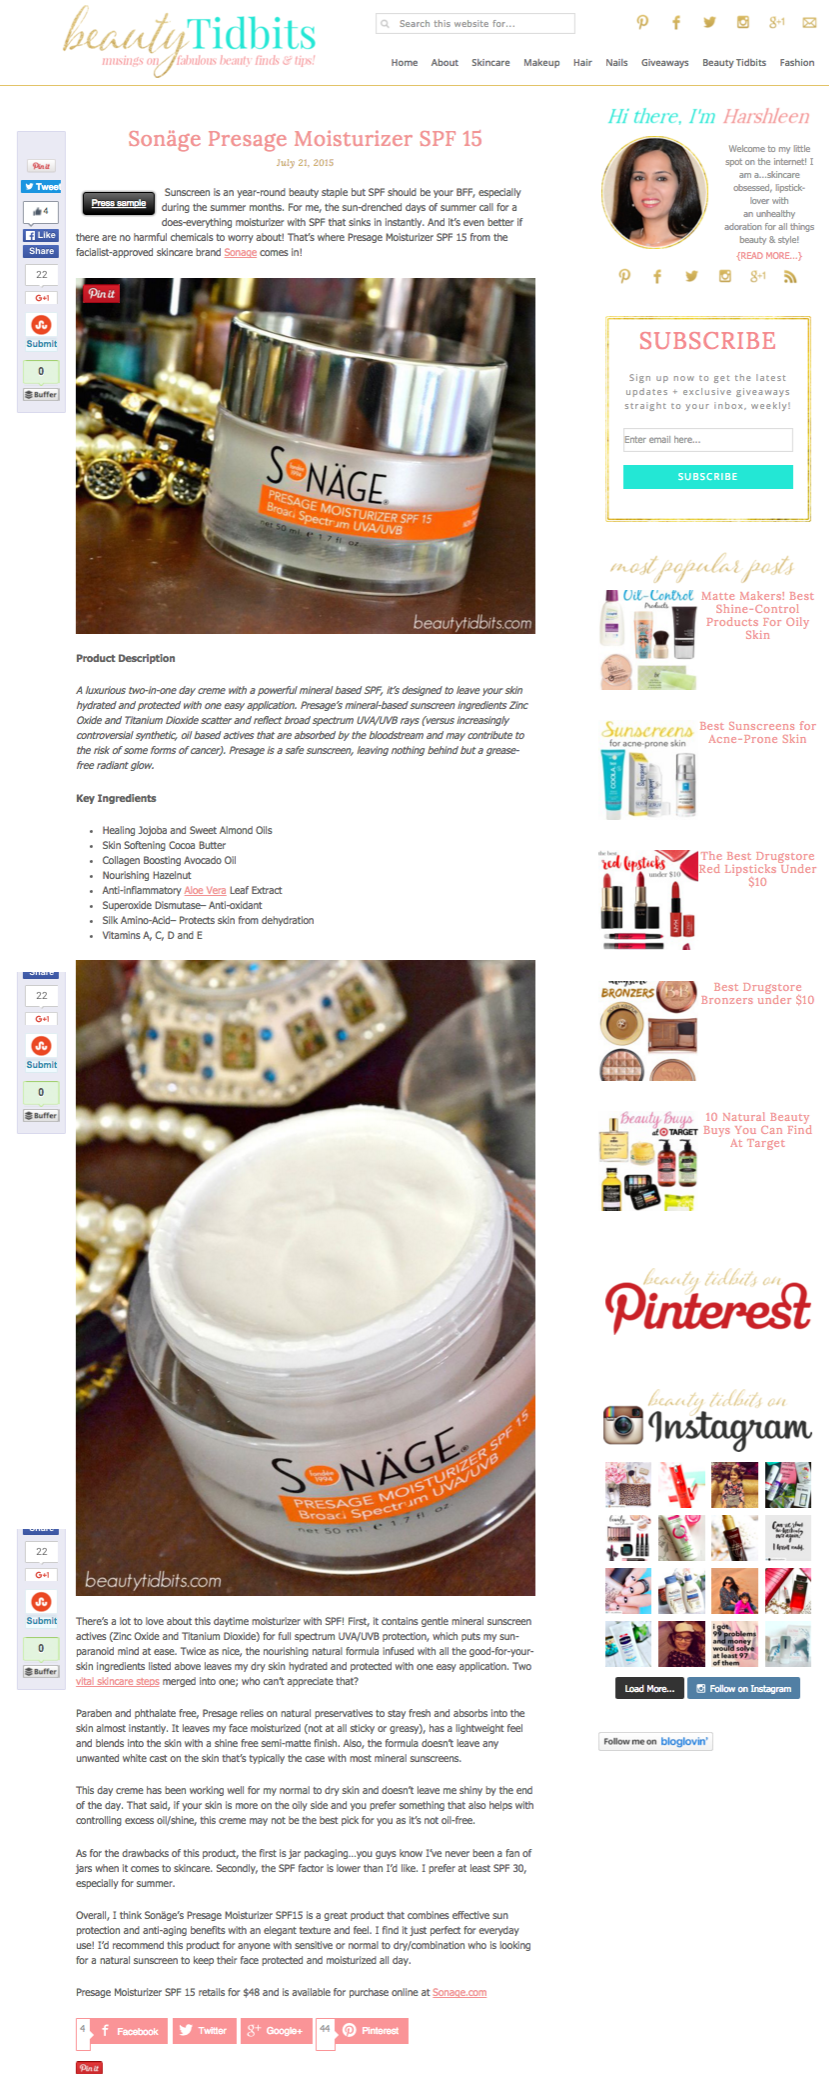 screenshot-beautytidbits.com 2016-01-21 16-03-20